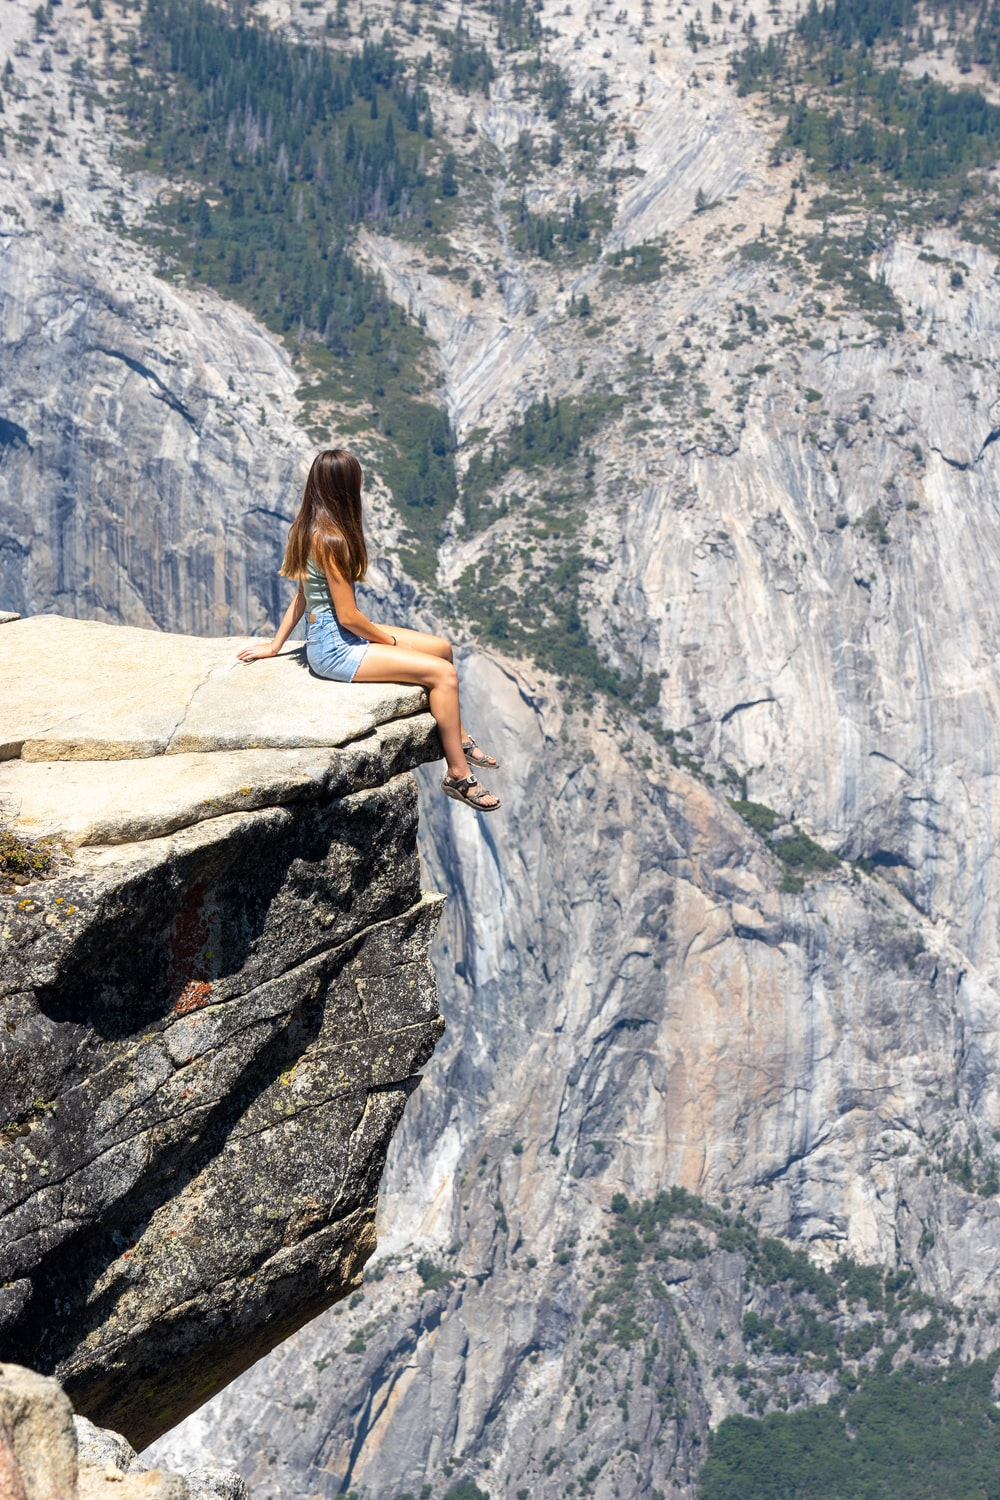 woman in white tank top and blue denim shorts sitting on rock formation during daytime